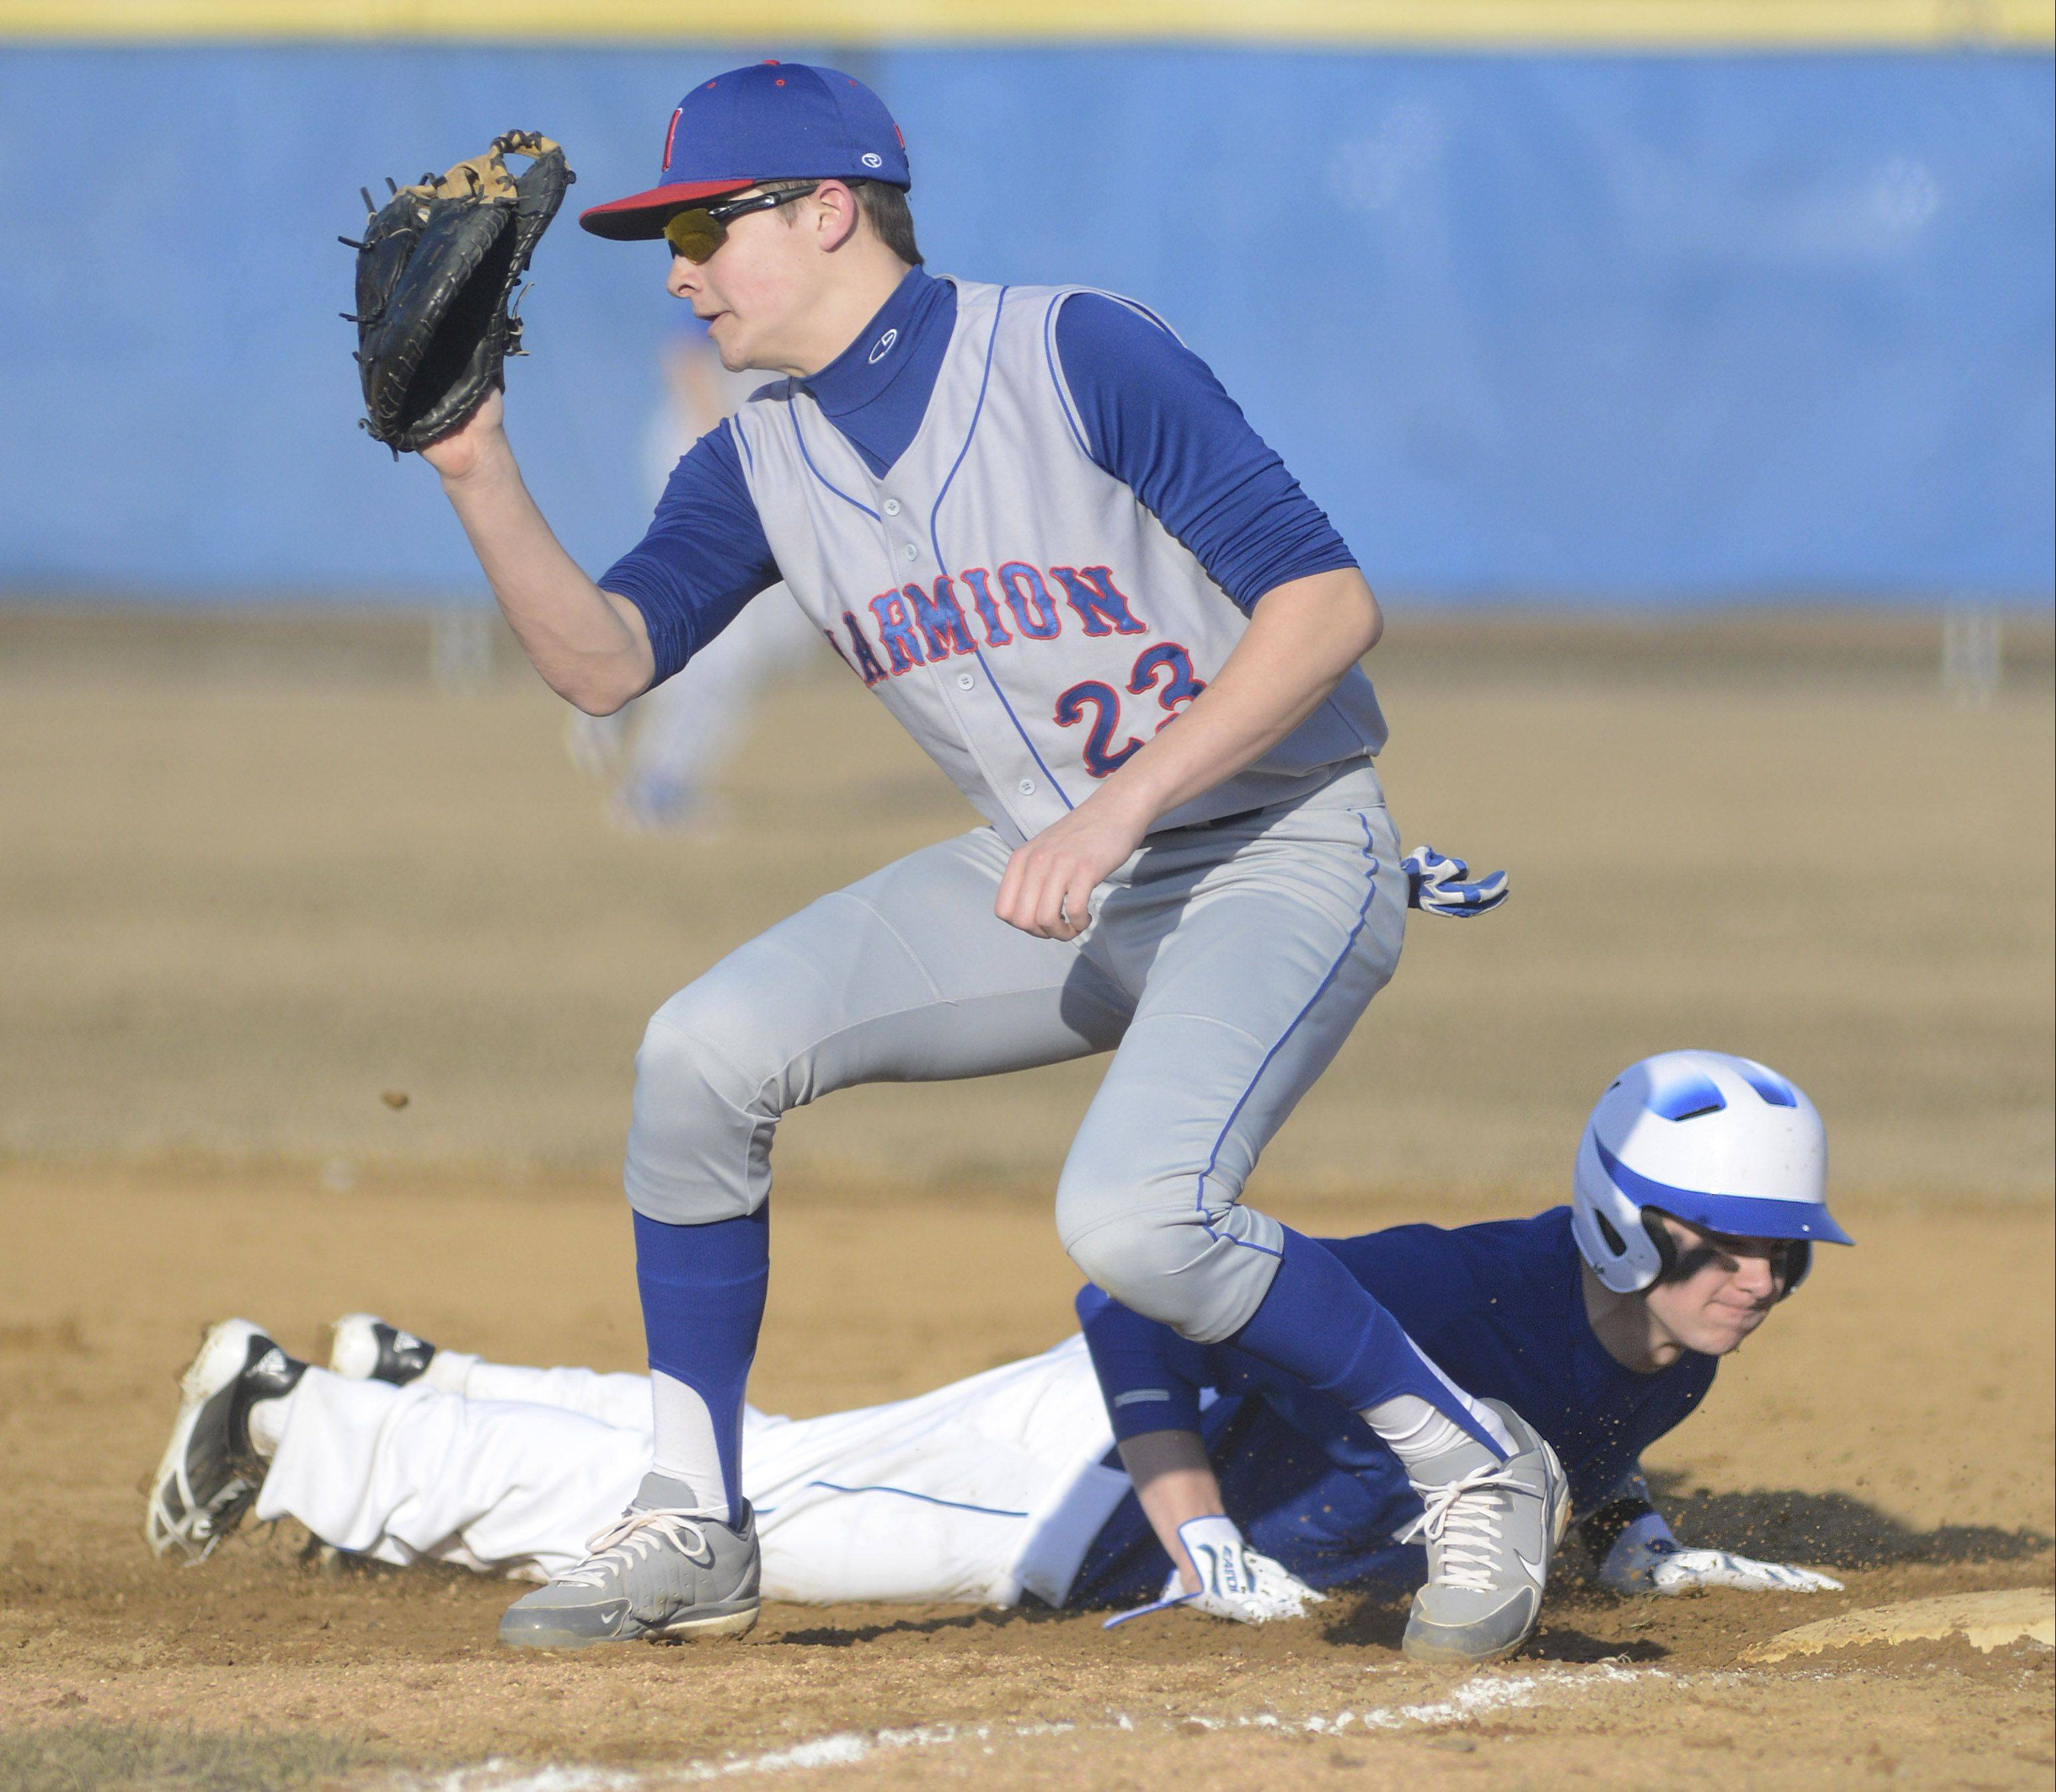 Geneva's Nick Derr dives back to first base before Marmion's Alex Troop can tag him, above, while the Vikings' Tony Landi fires a pitch, below.